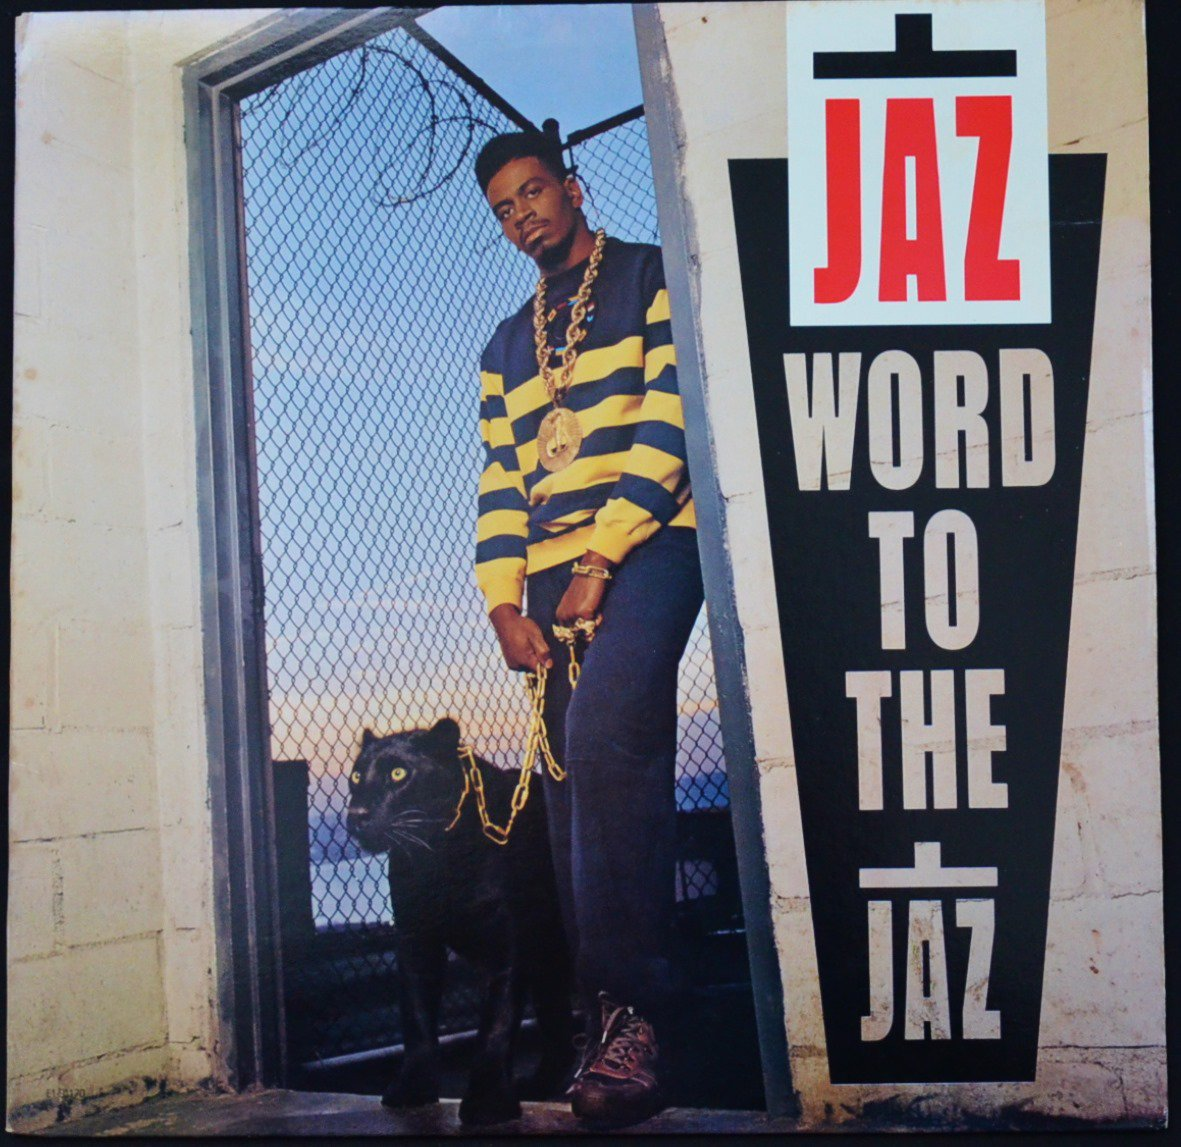 THE JAZ (BIG JAZ,JAZ-O) / WORD TO THE JAZ (1LP)